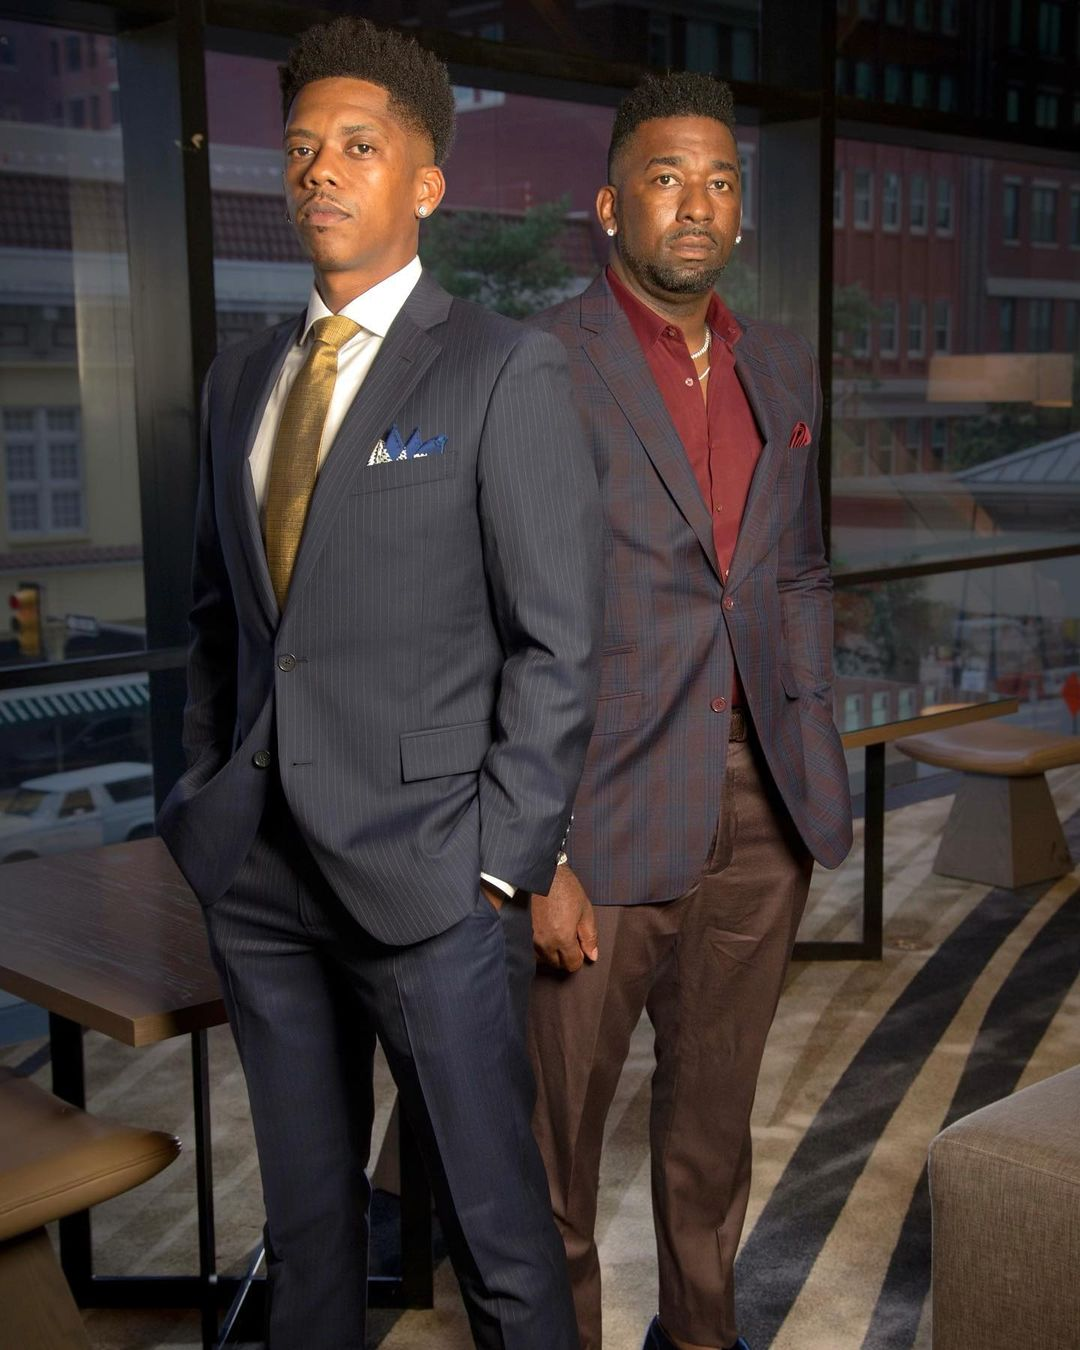 Young entrepreneur, Jason McGee and Jamaal Evans become investing tycoons